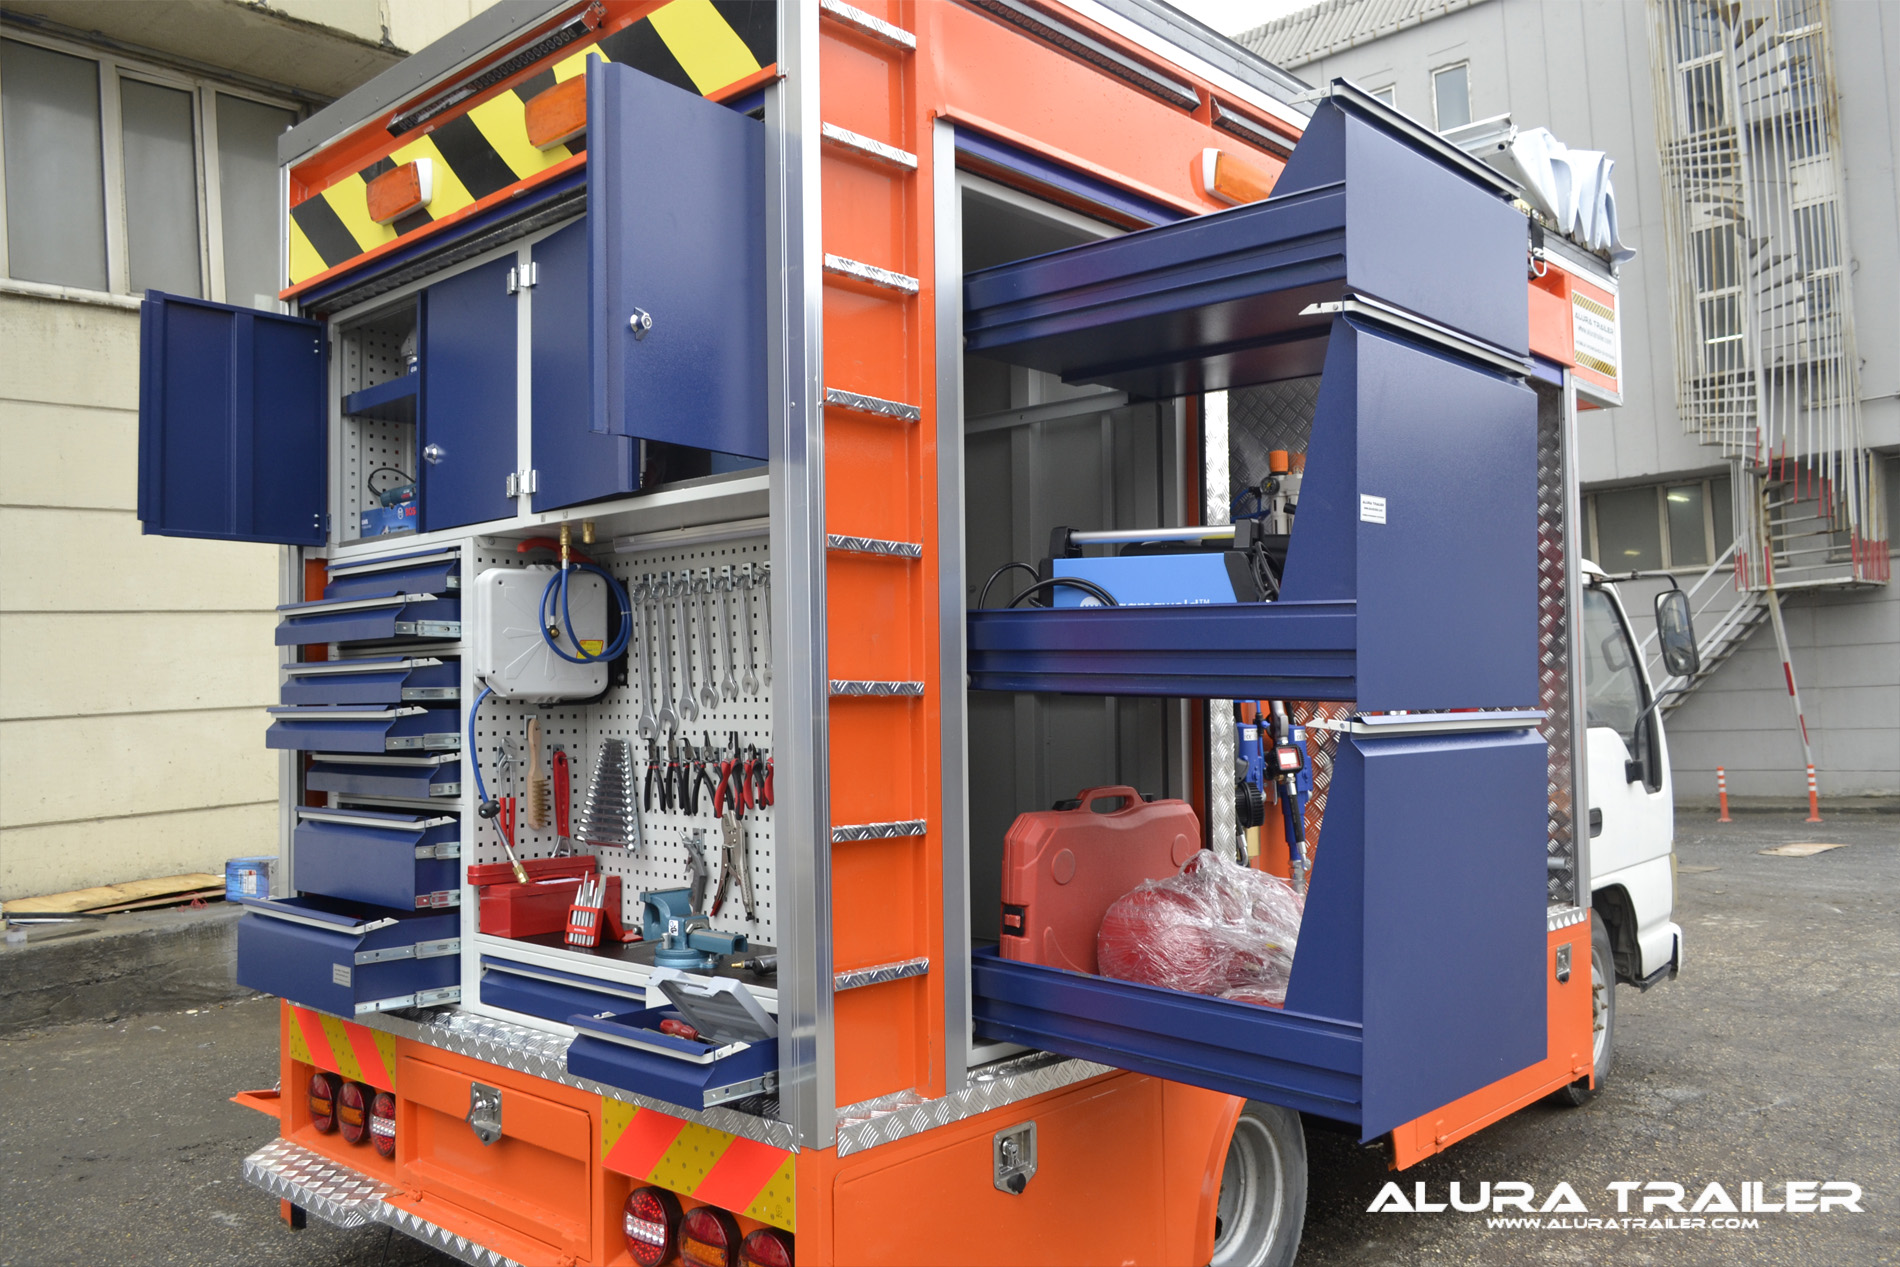 Alura trailer turkey mobile service truck for Rv workshop